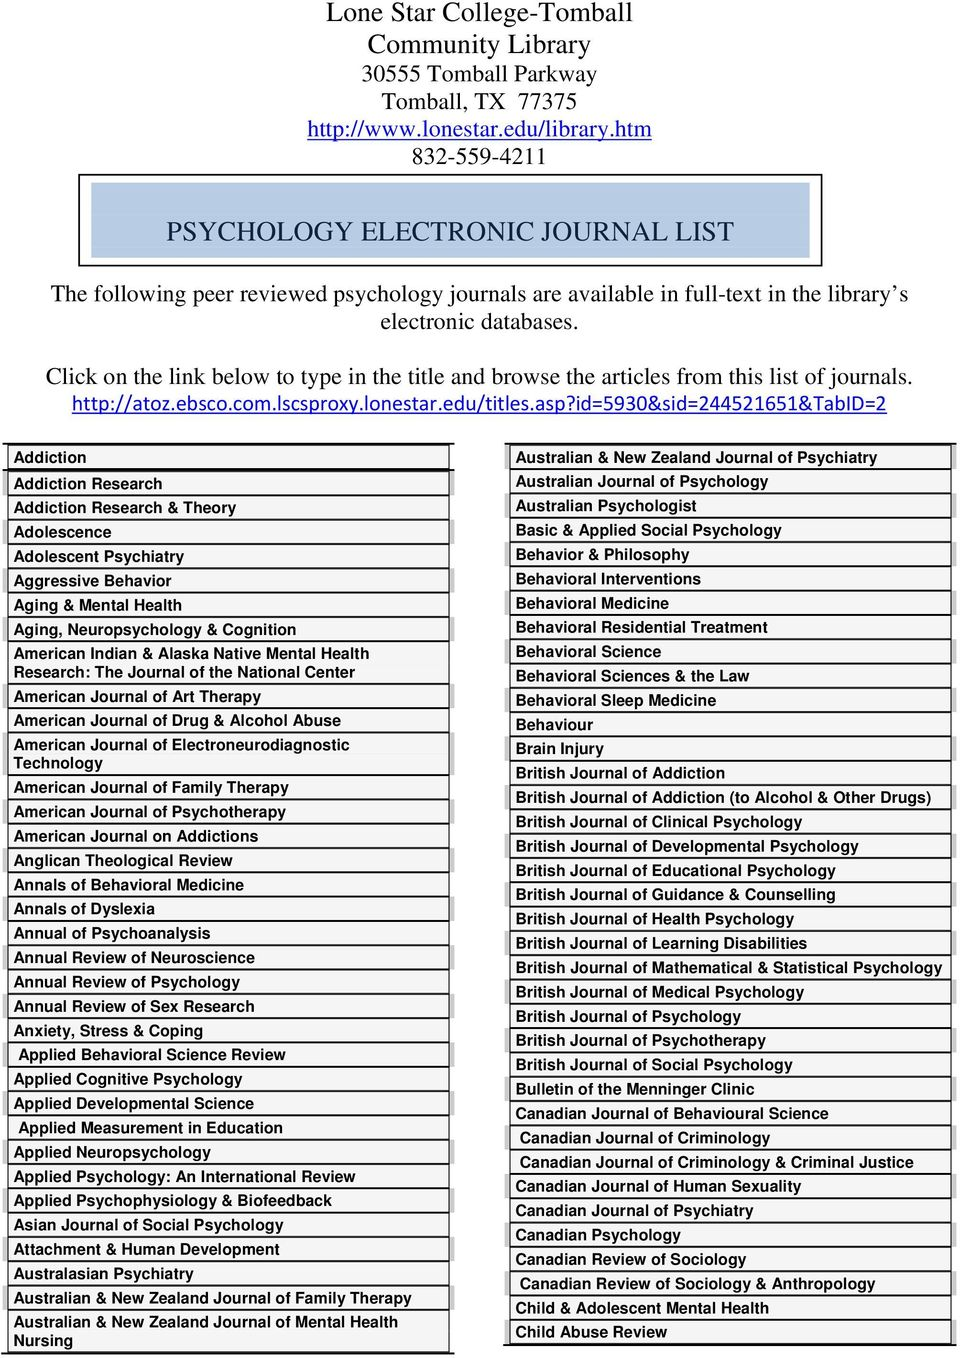 Click on the link below to type in the title and browse the articles from this list of journals. http://atoz.ebsco.com.lscsproxy.lonestar.edu/titles.asp?